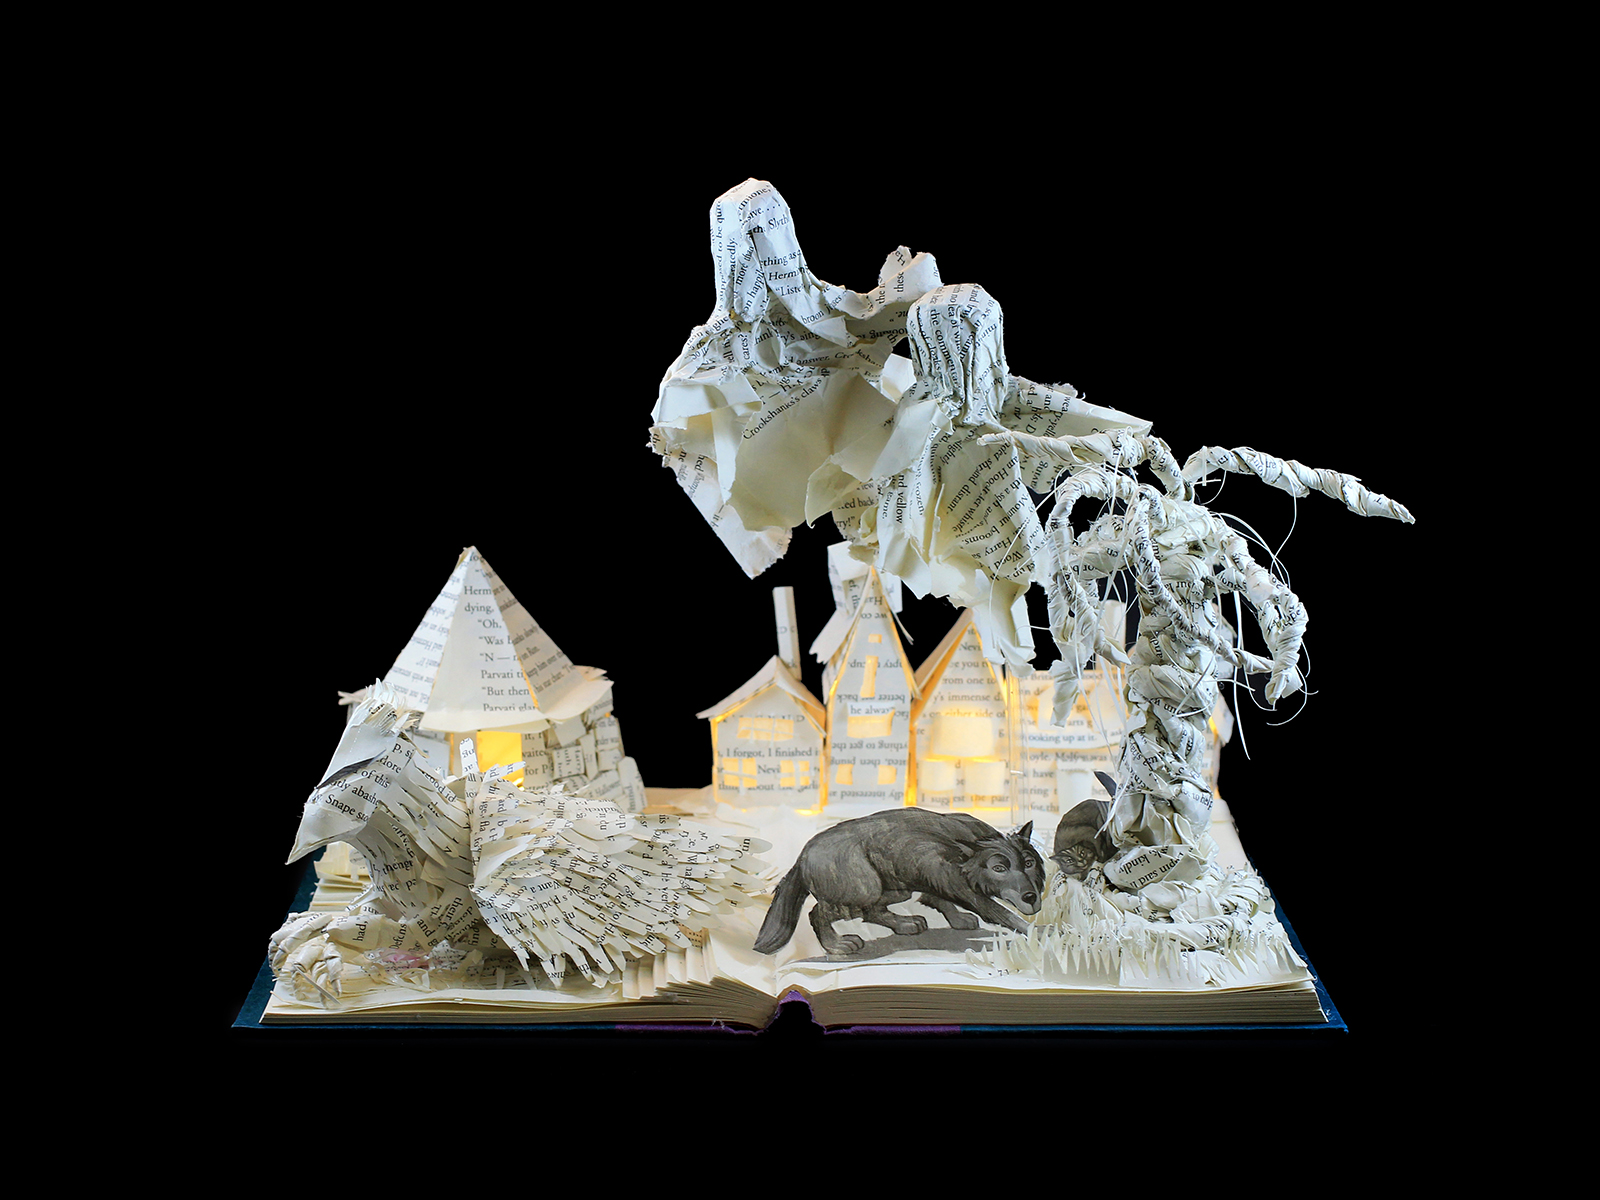 Harry Potter and the Prisoner of Azkaban book sculpture